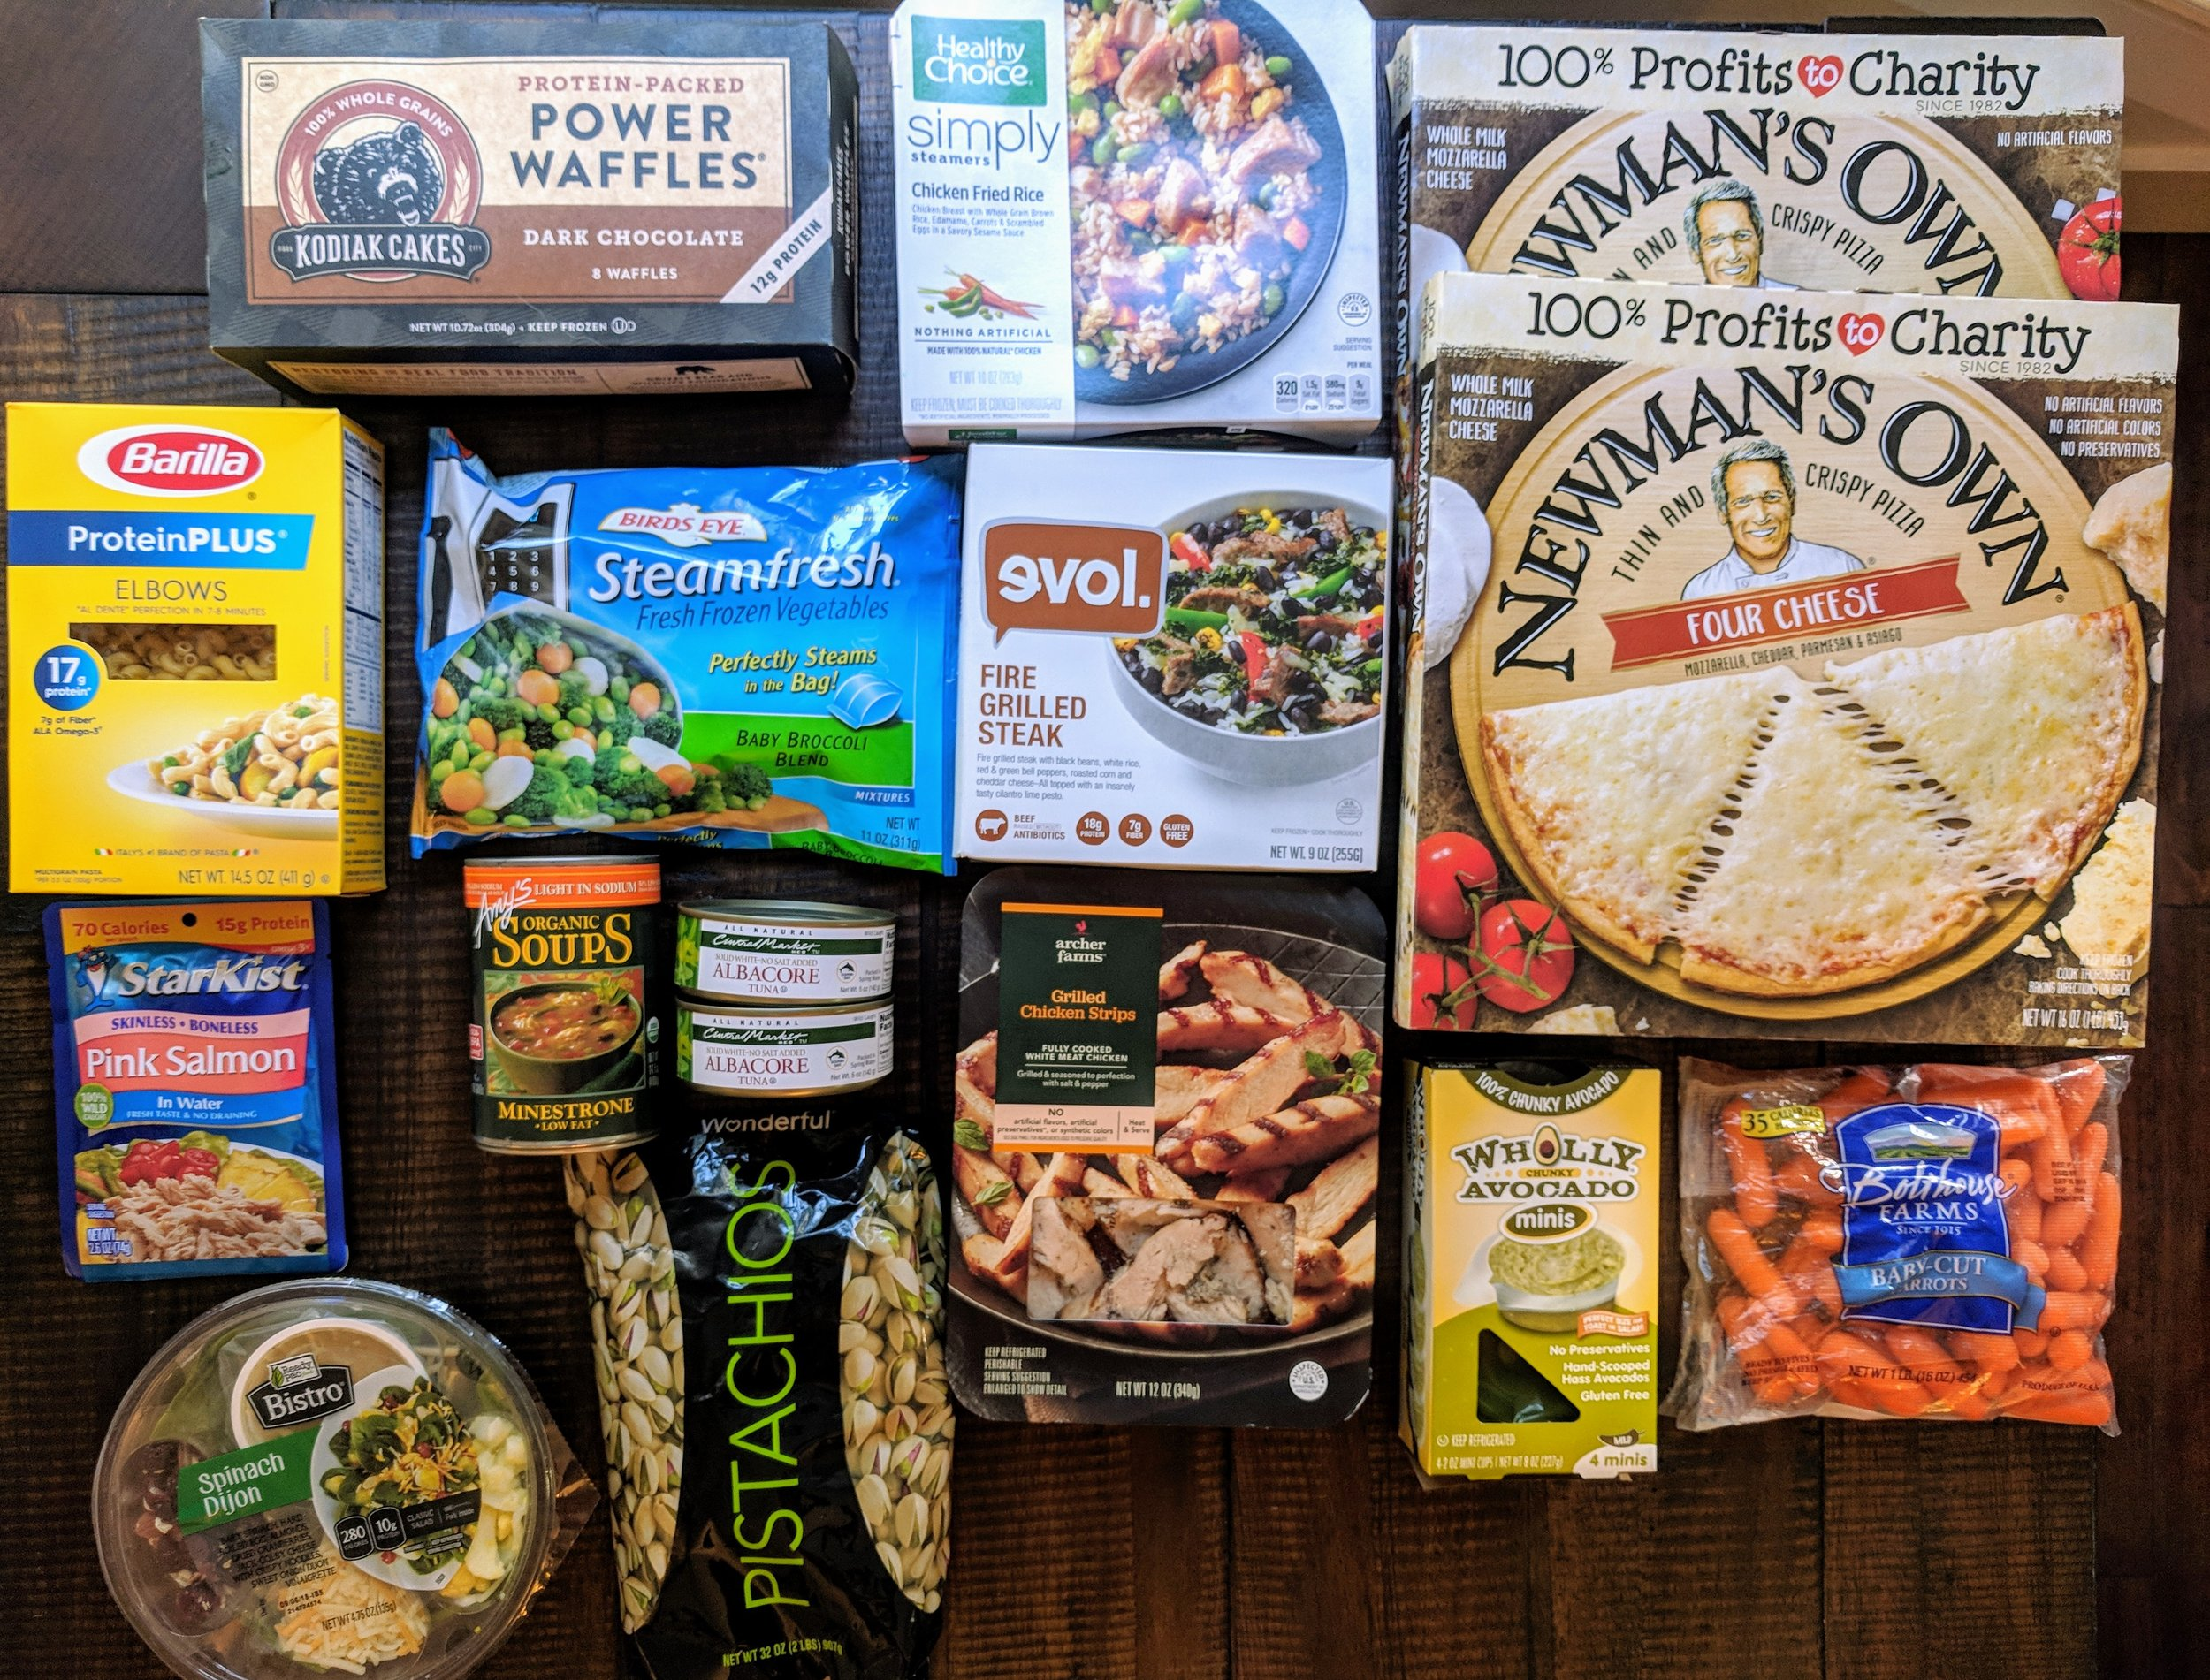 A few of our favorite convenience items to stock in the freezer, fridge, and pantry for those days and evenings when cooking just doesn't fit in the schedule.